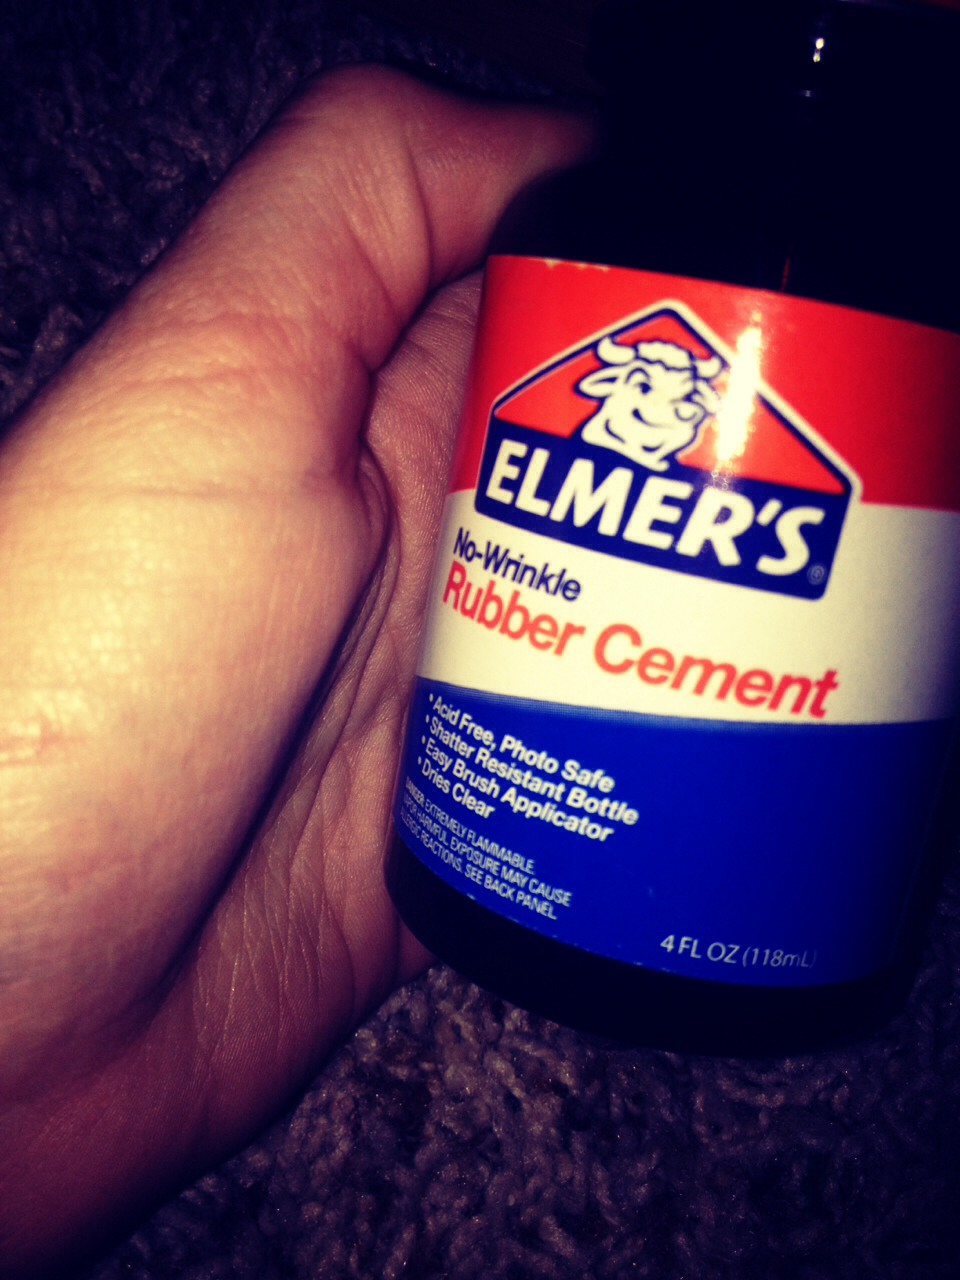 Take some sort of glue like super glue or rubber cement!